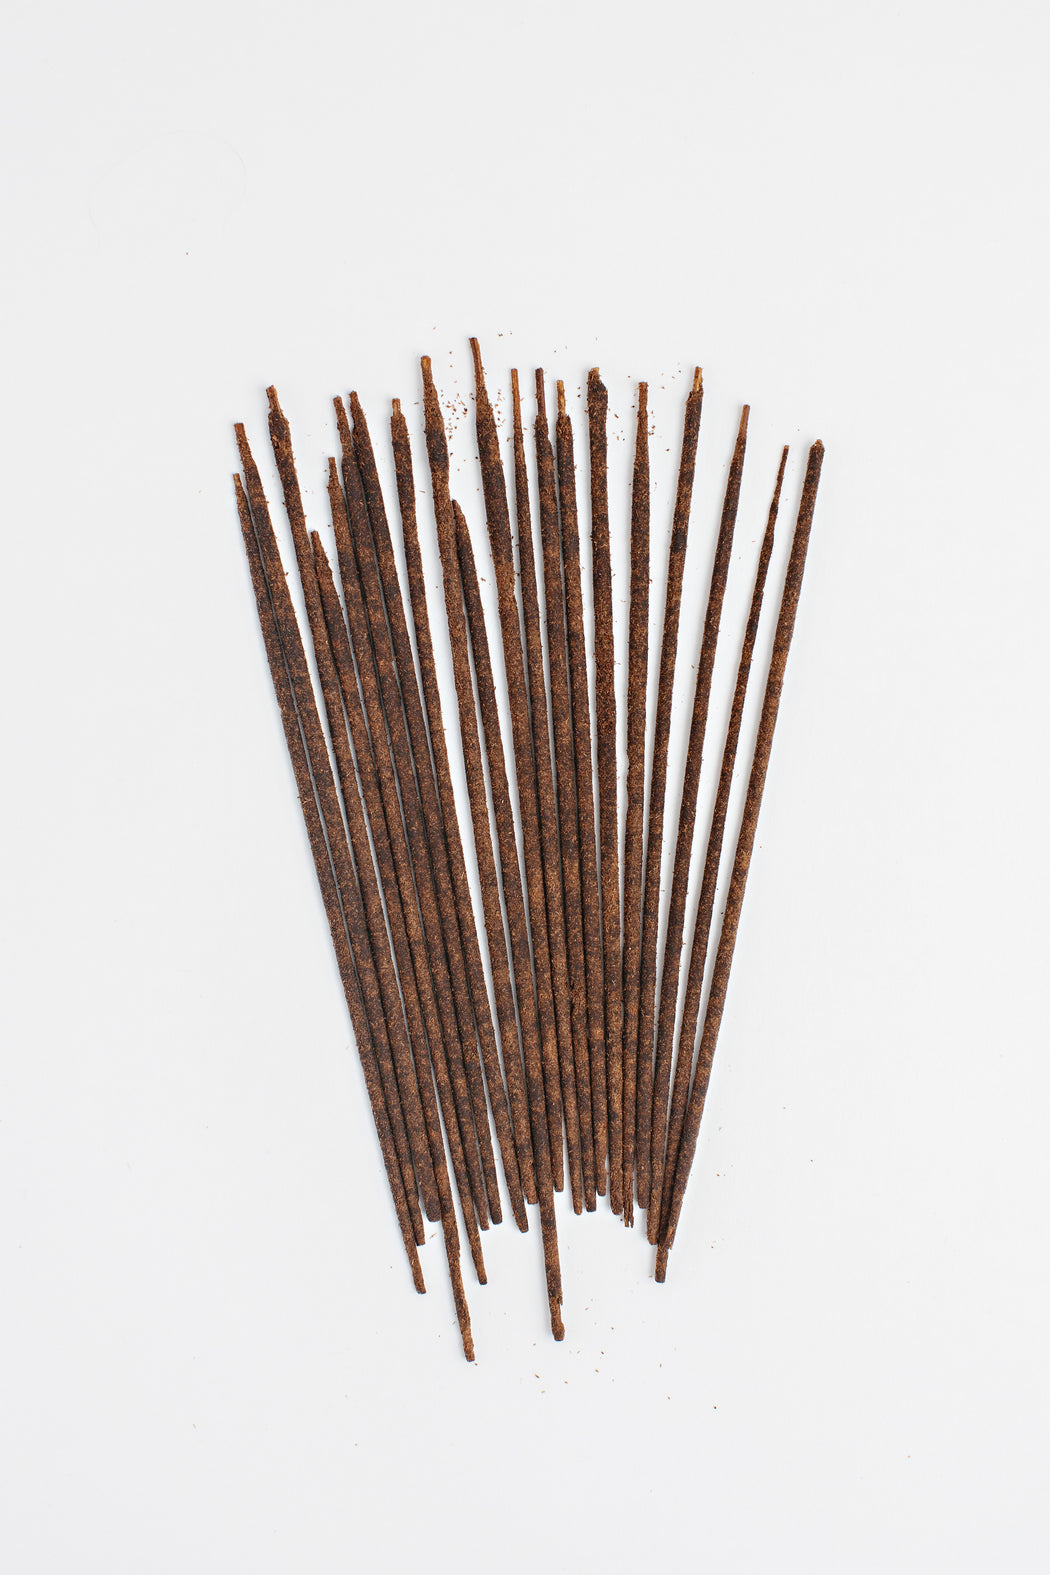 Ritual Incense - DOJA Cannabis